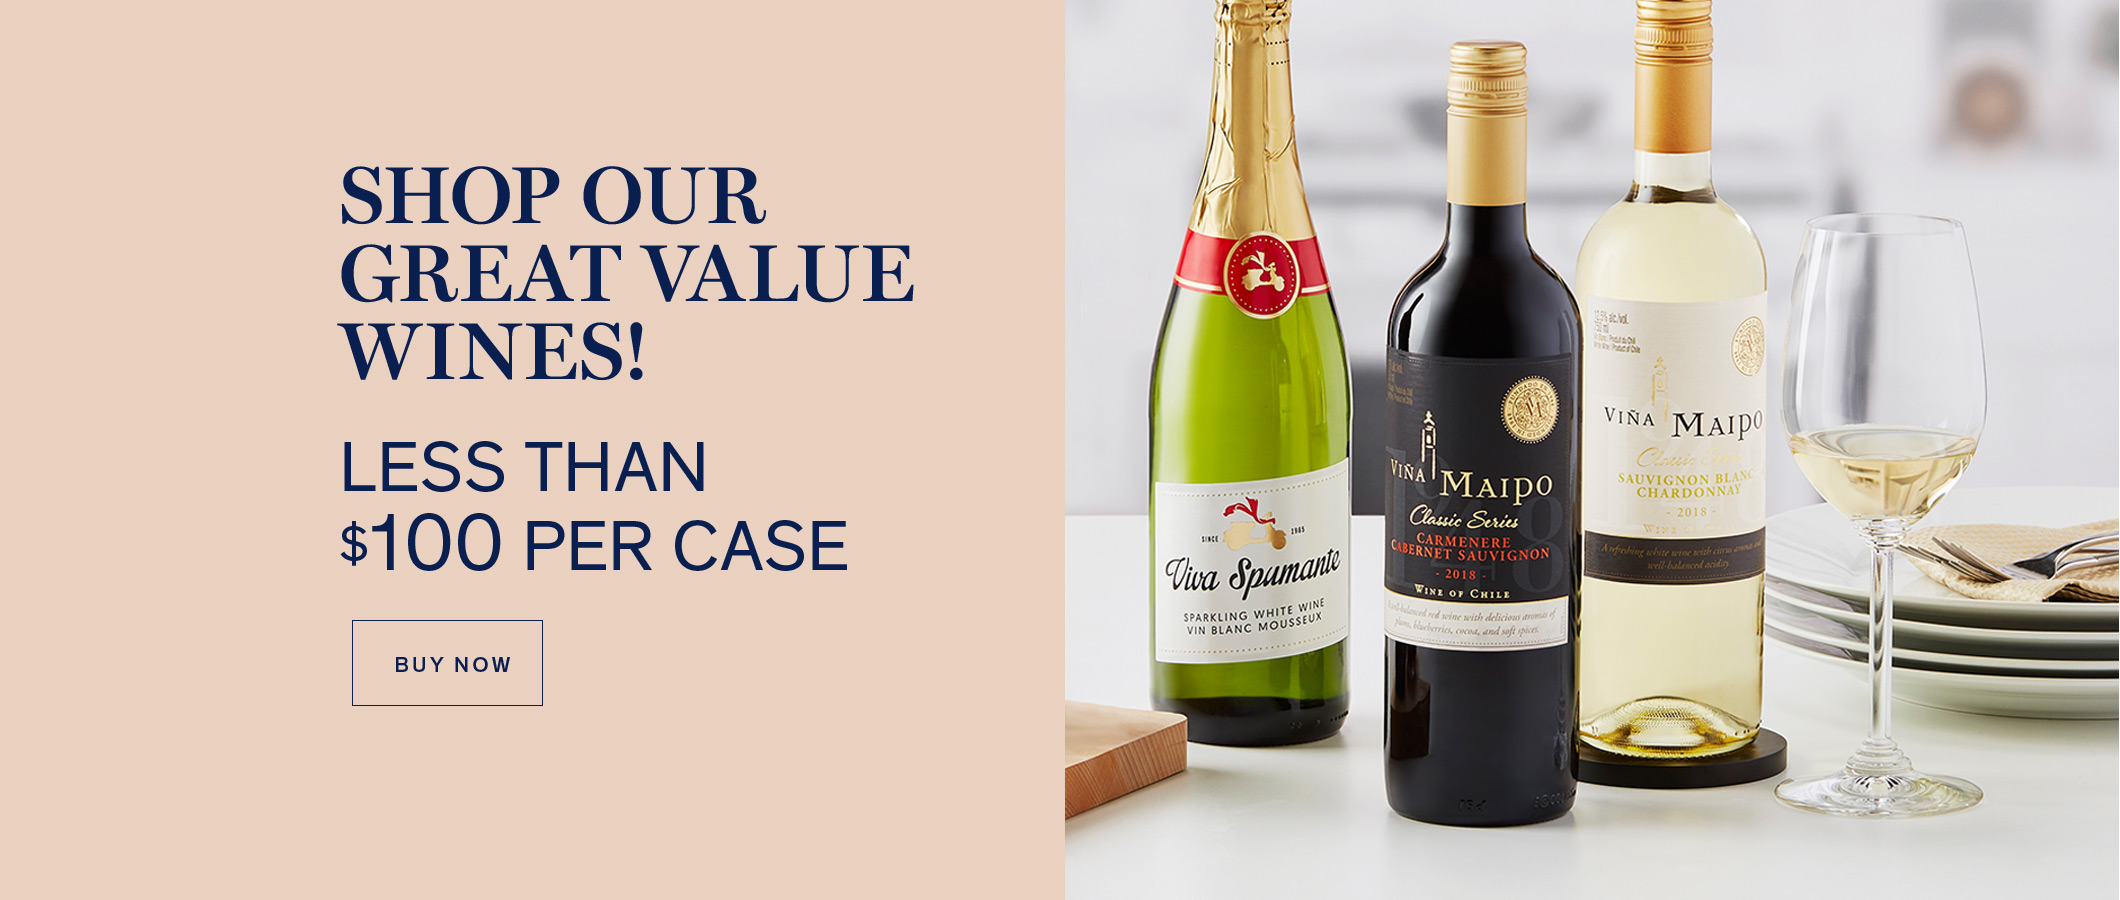 Shop our Great Value Wines  Less Than $100 Per Case BUY NOW